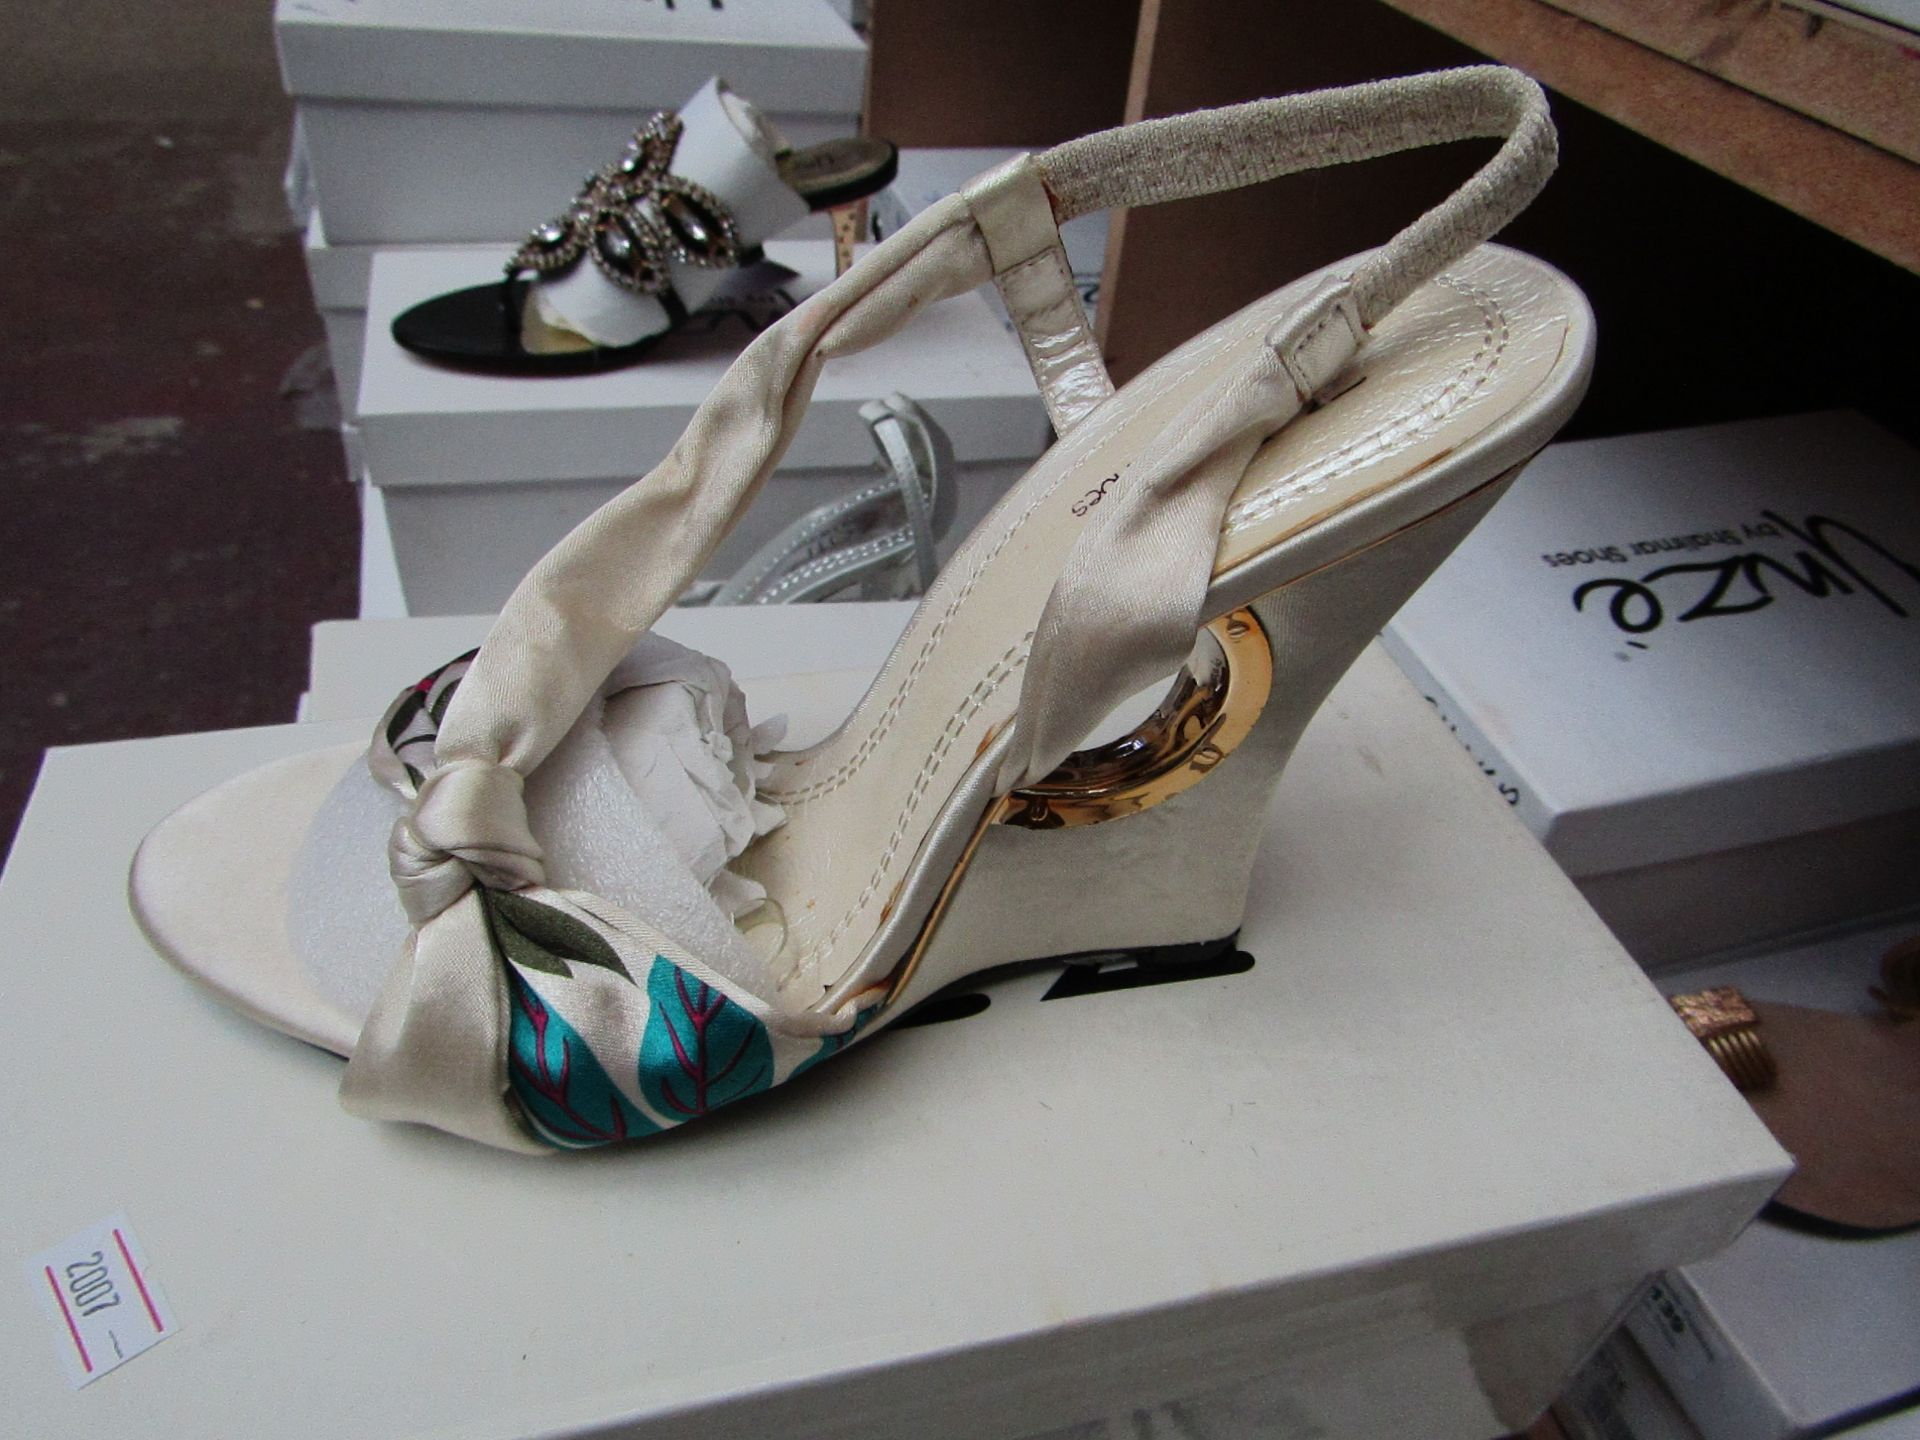 Zaif by Shalamar Shoes Ladies Ivory Shoes size 7 new & boxed see image for design